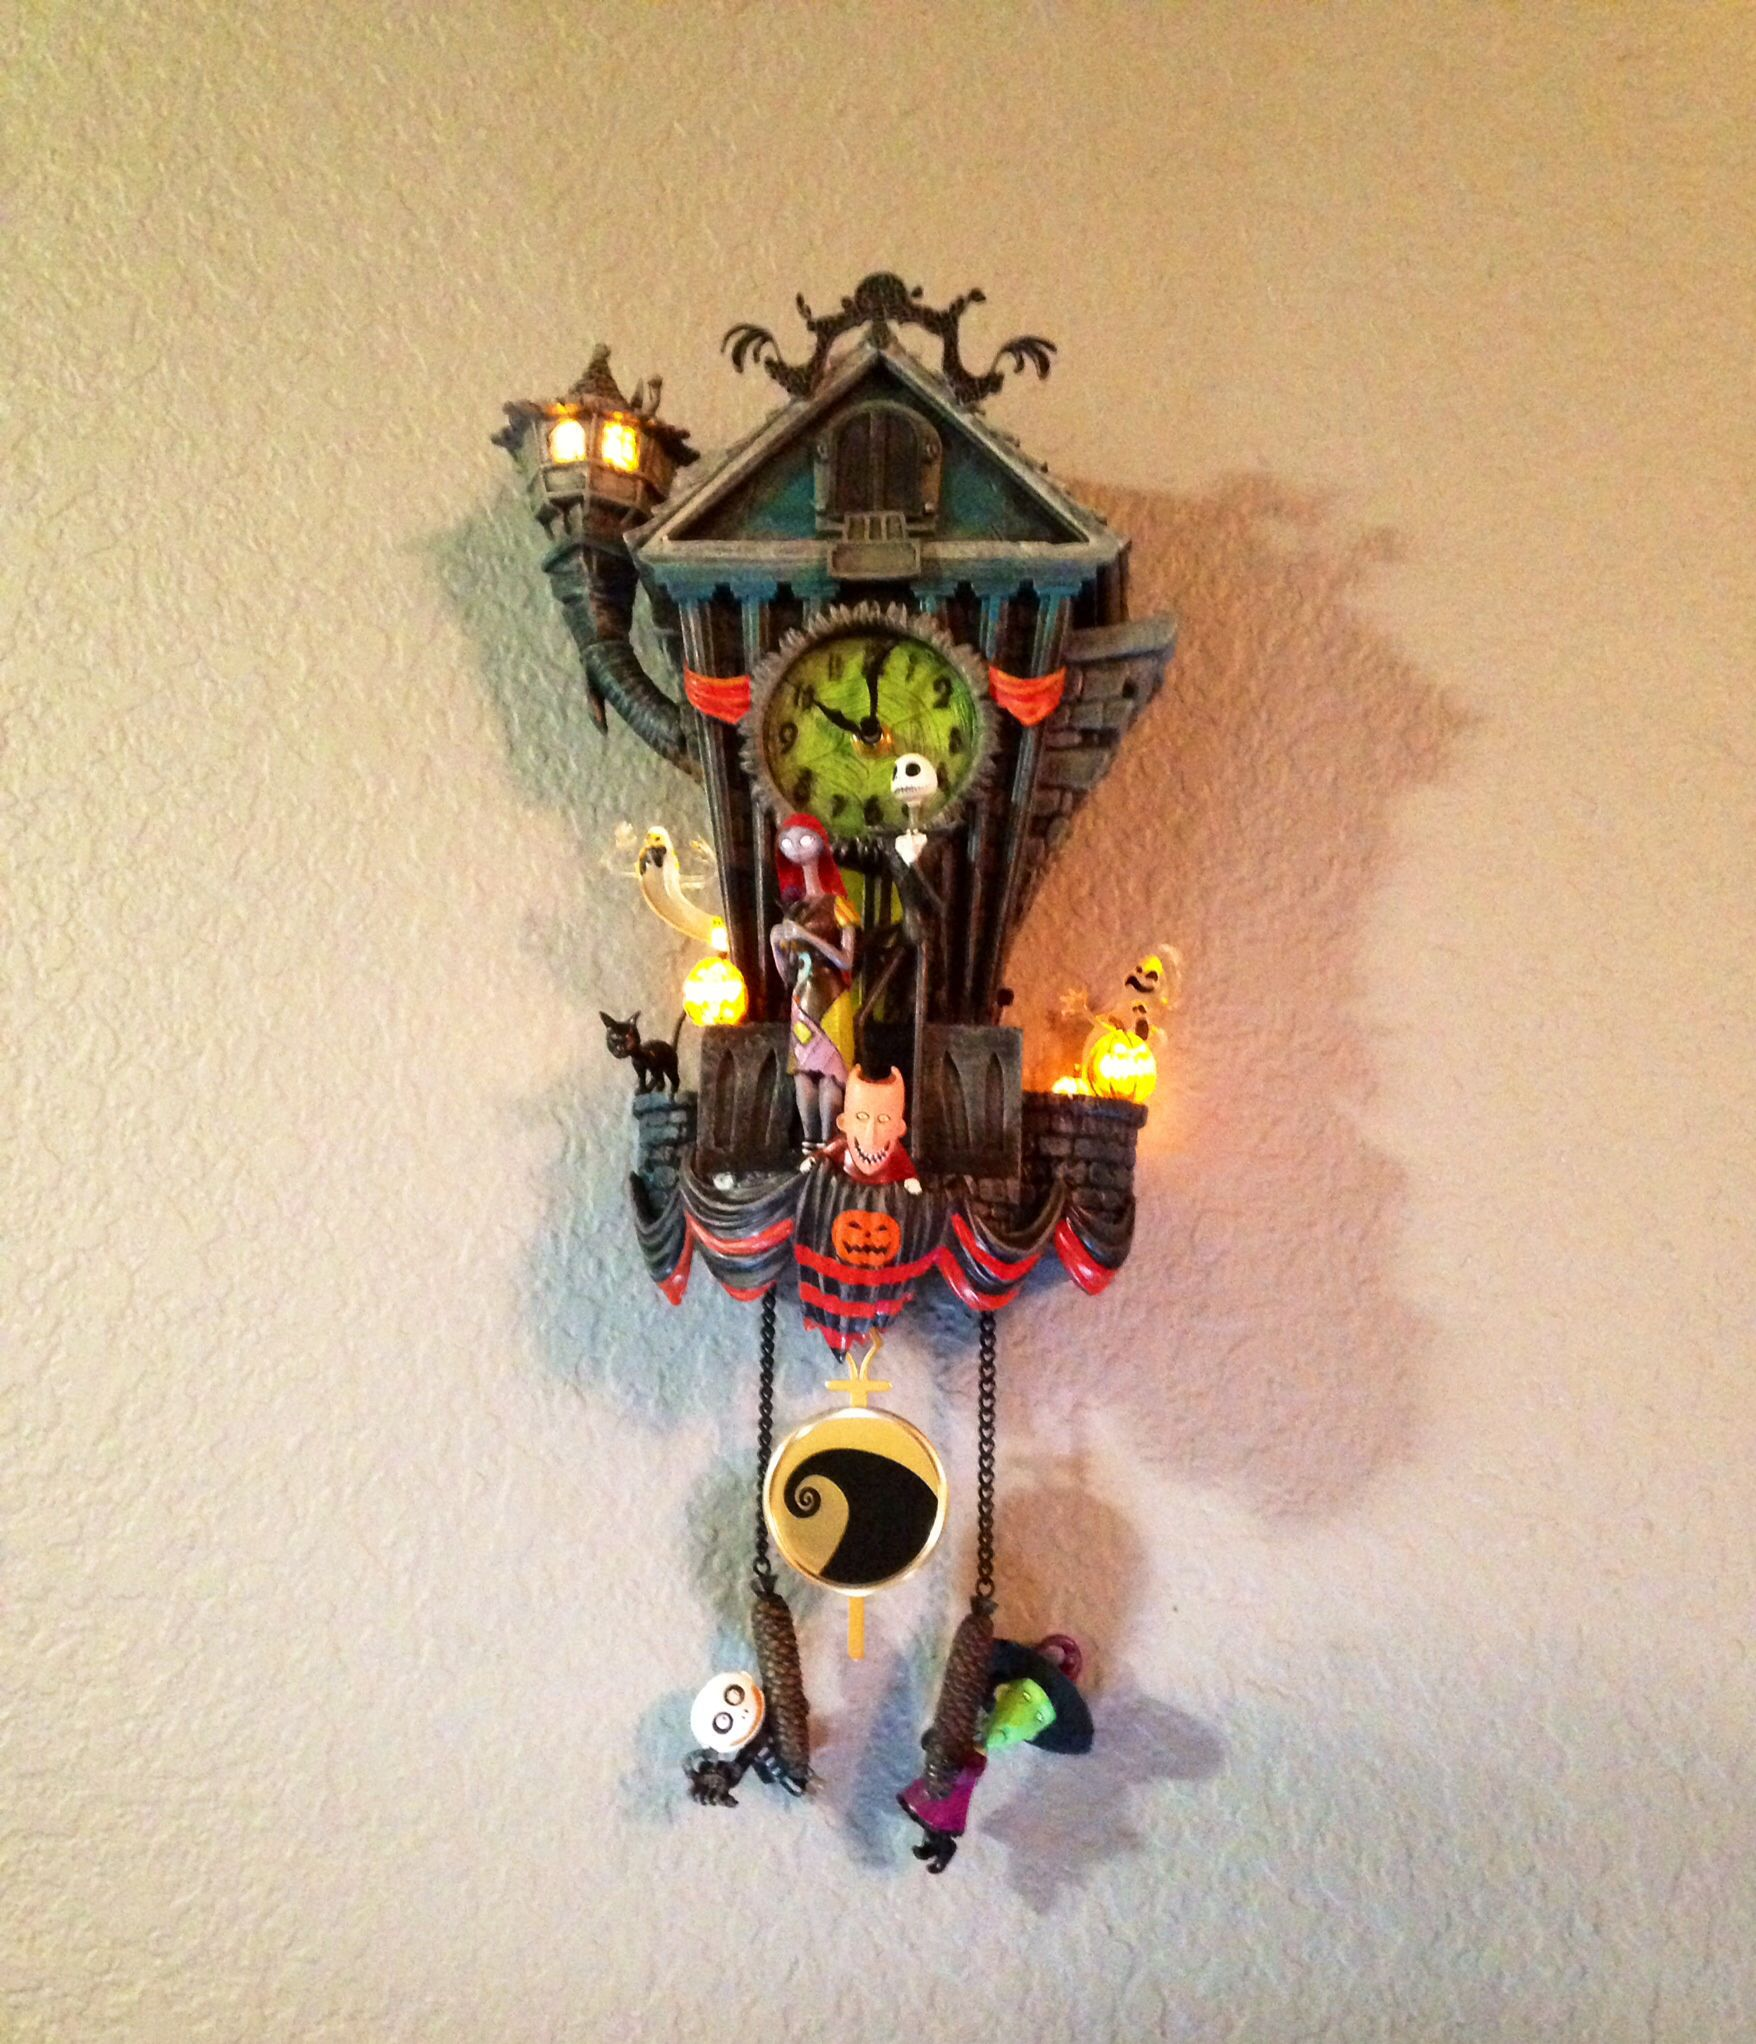 my new nightmare before christmas cuckoo clock go to my ig to see the view - Nightmare Before Christmas Cuckoo Clock